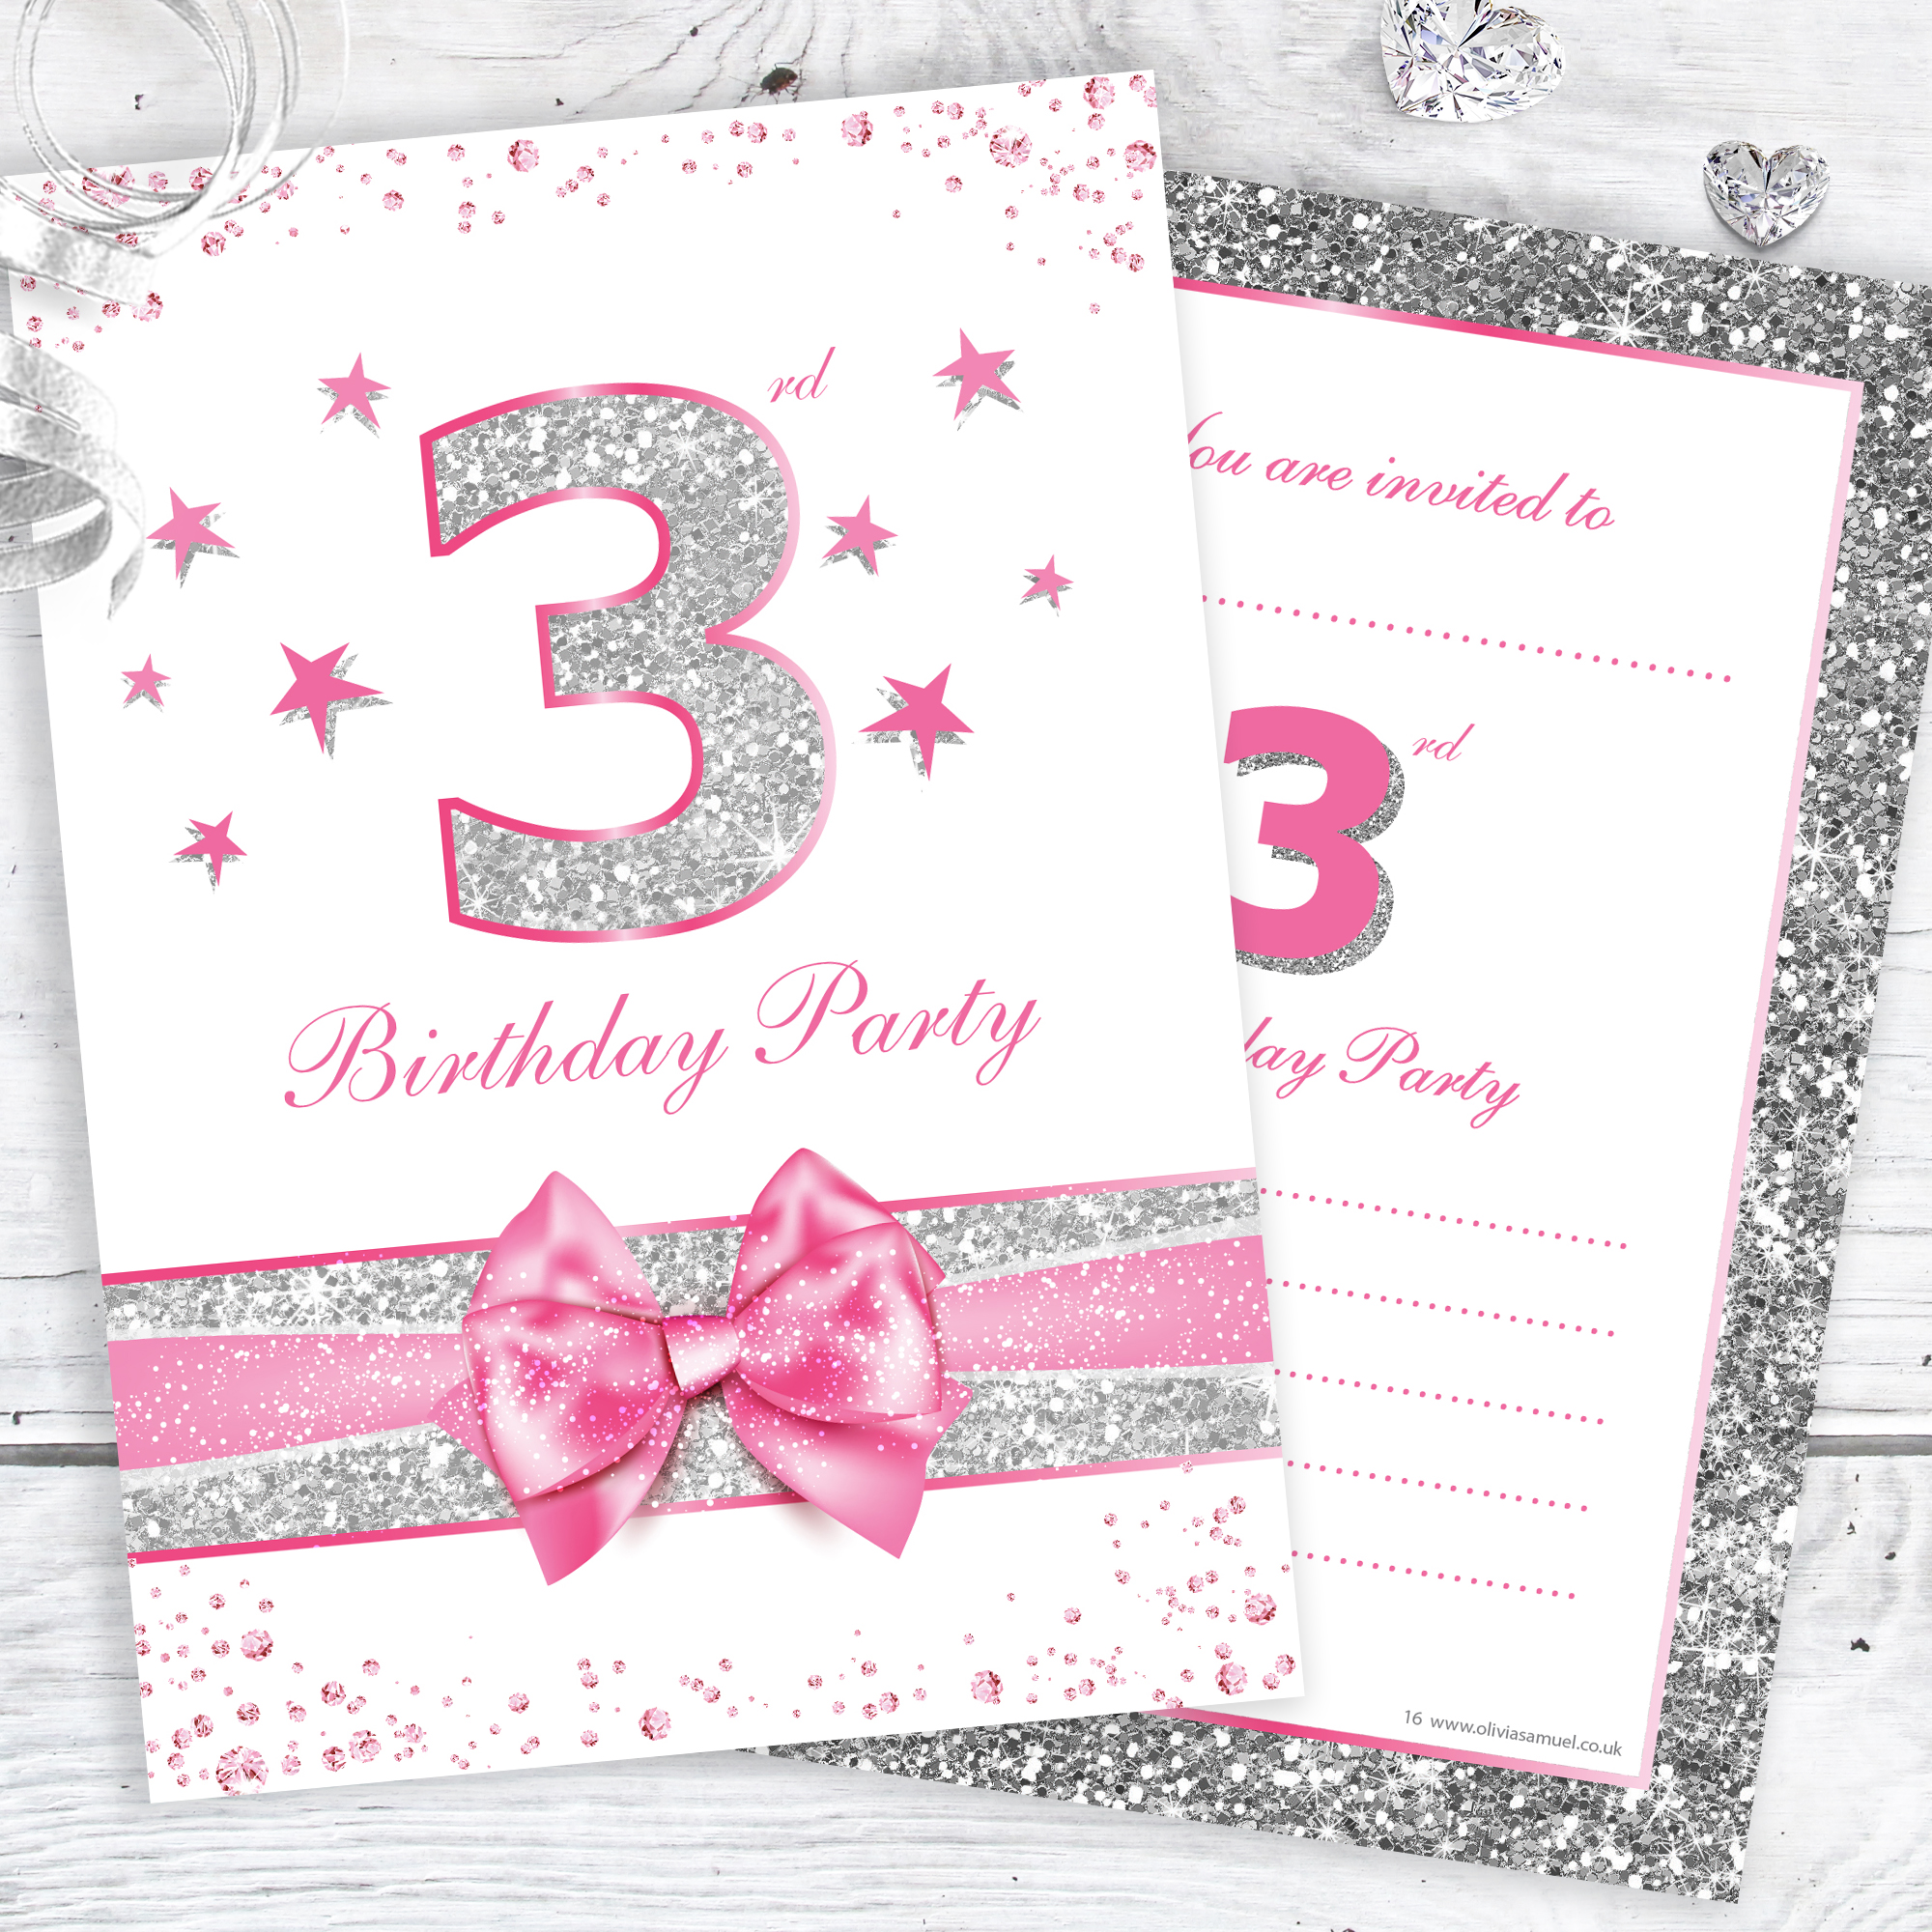 3rd Birthday Party Invitations Pink Sparkly Design And Photo Effect Silver Glitter A6 Postcard Size With Envelopes Pack Of 10